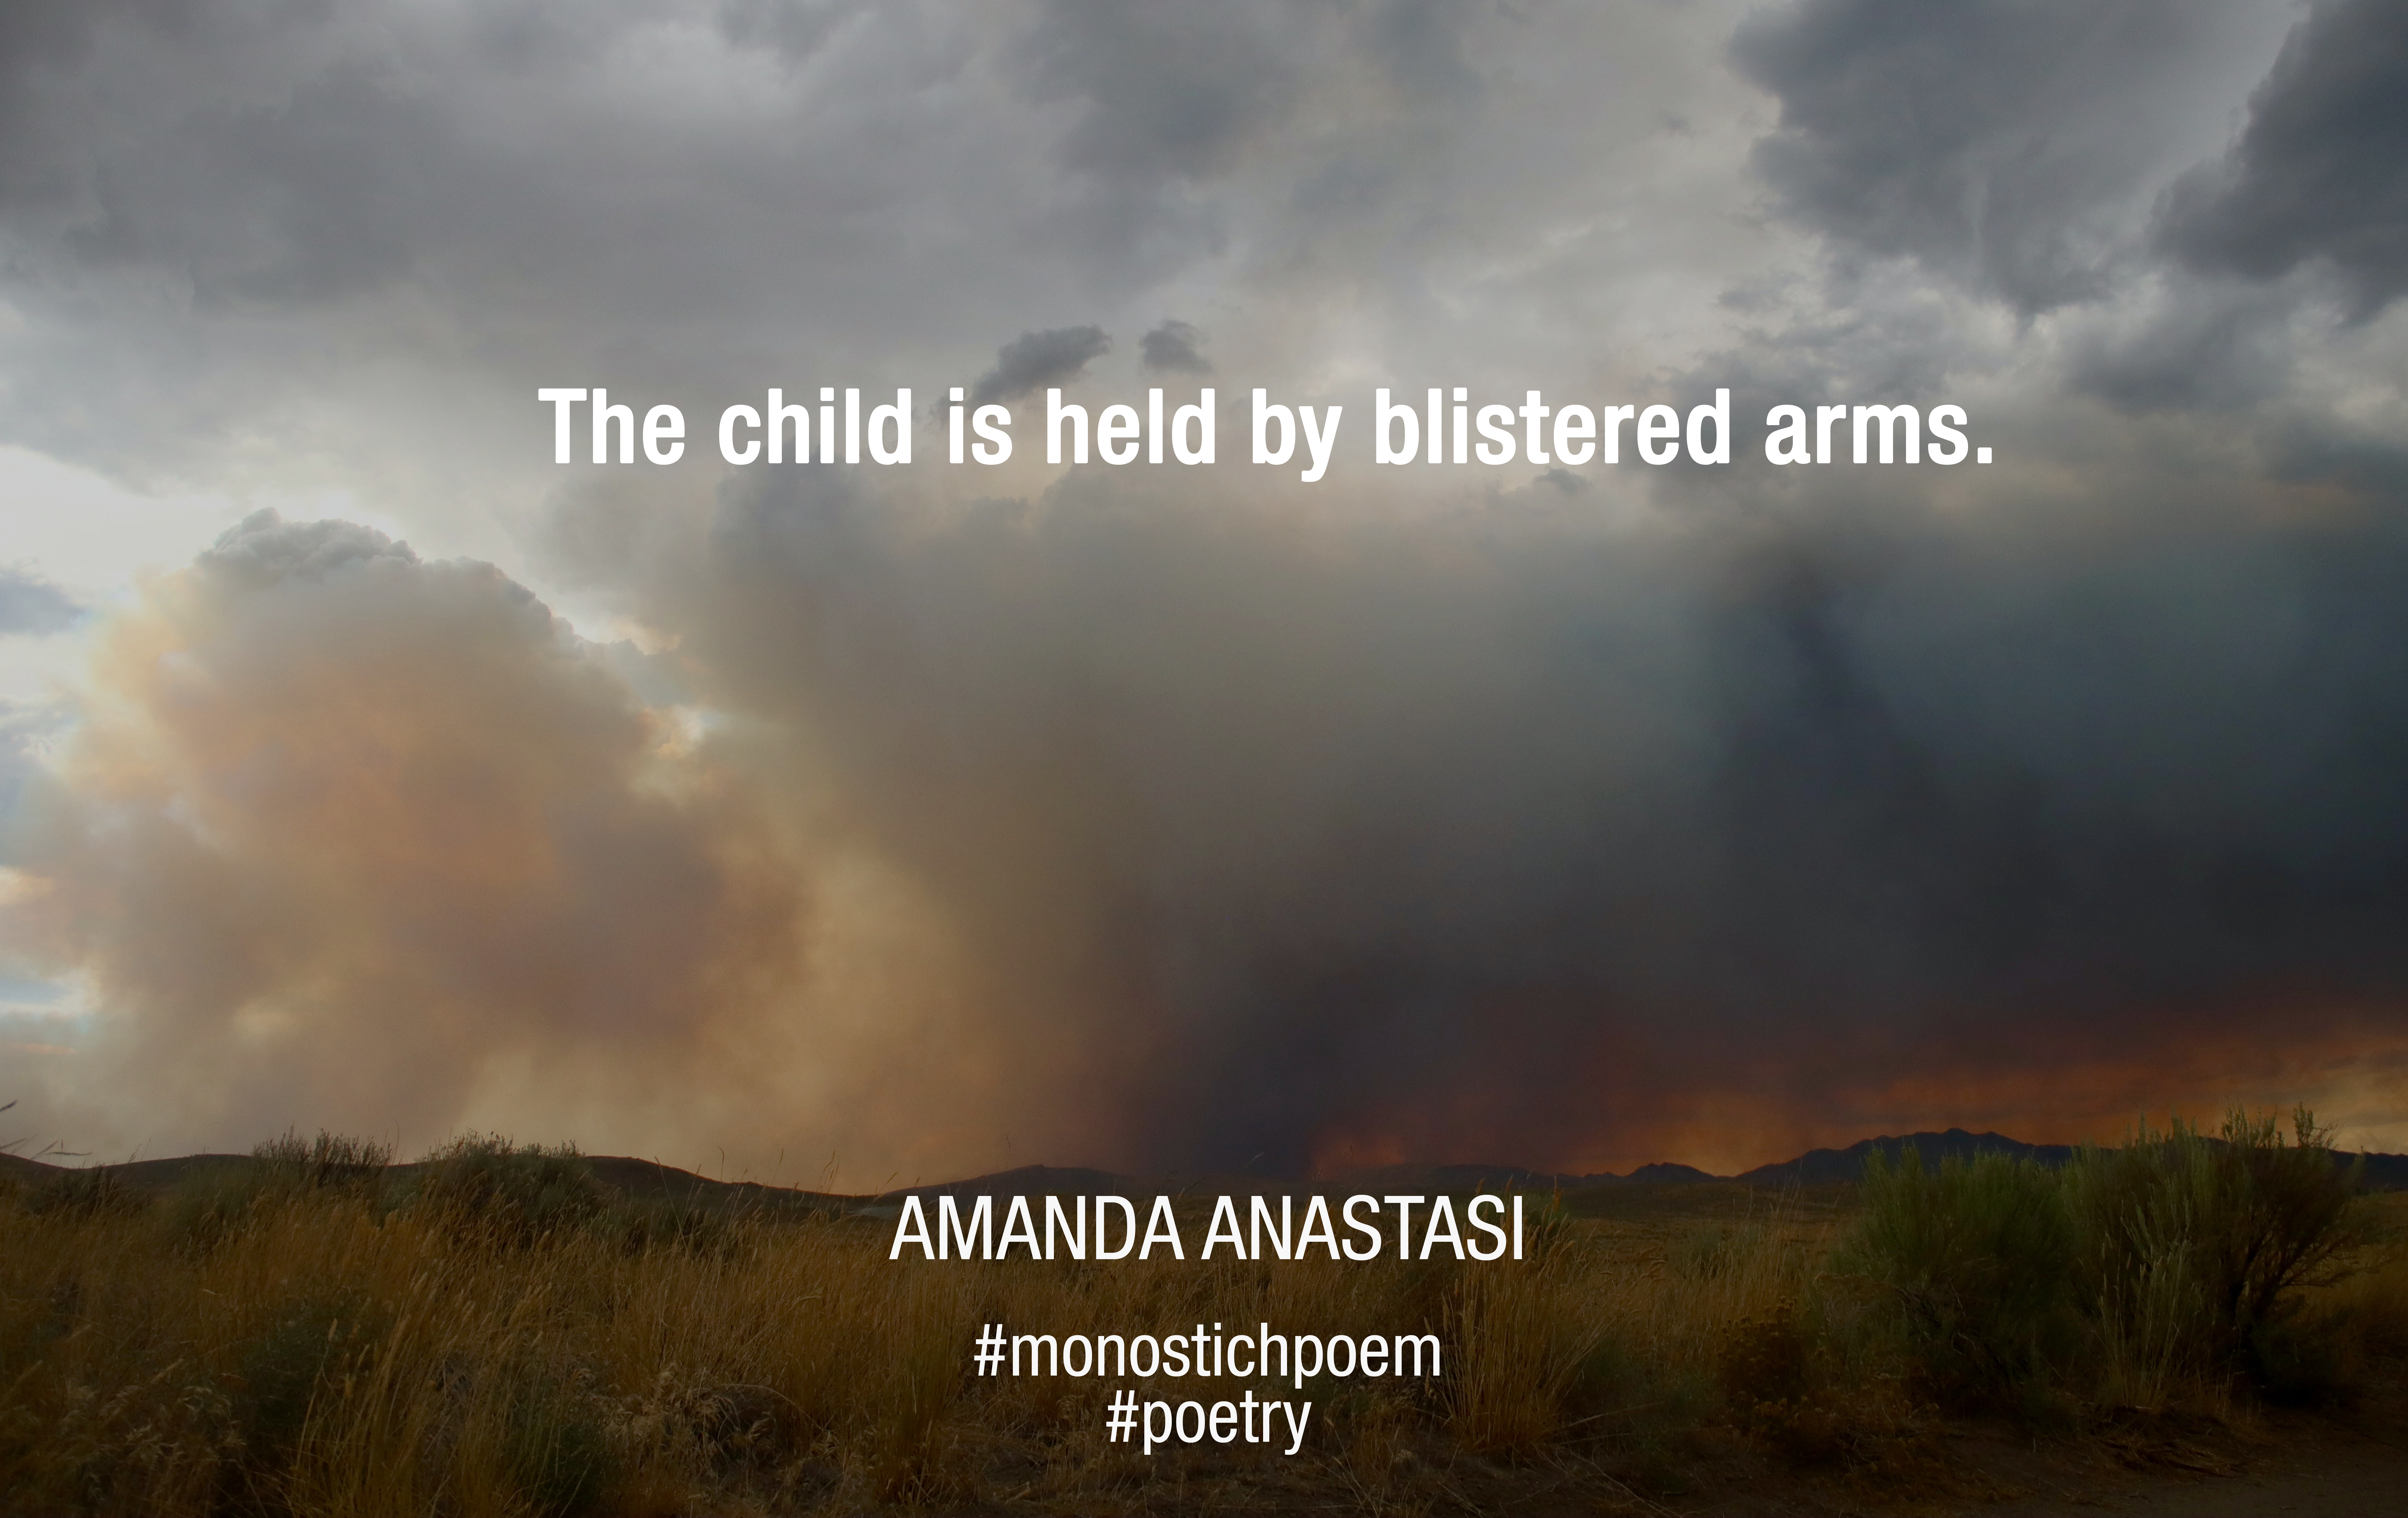 The child is held by blistered arms.